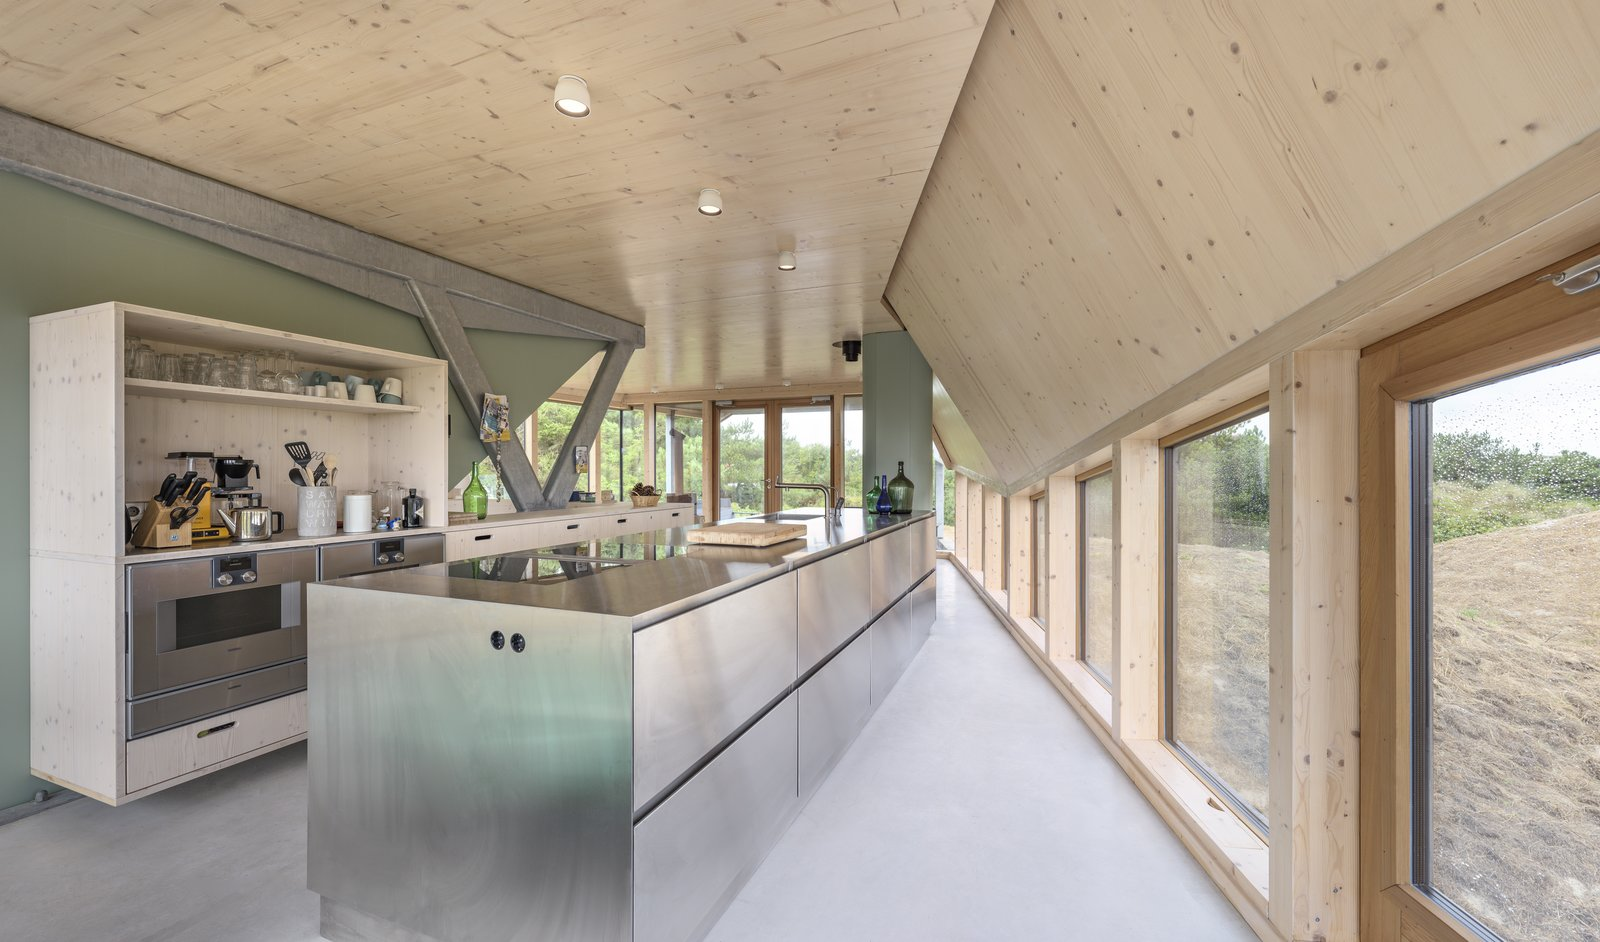 Kitchen, Wood, Ceiling, Metal, Wall Oven, Drop In, Wood, Wood, Open, and Cooktops The open plan kitchen on the ground floor.  Dwell's Favorite Kitchen Metal Wall Oven Wood Photos from A Tent-Shaped Home in the Netherlands Crouches Between Natural Dunes